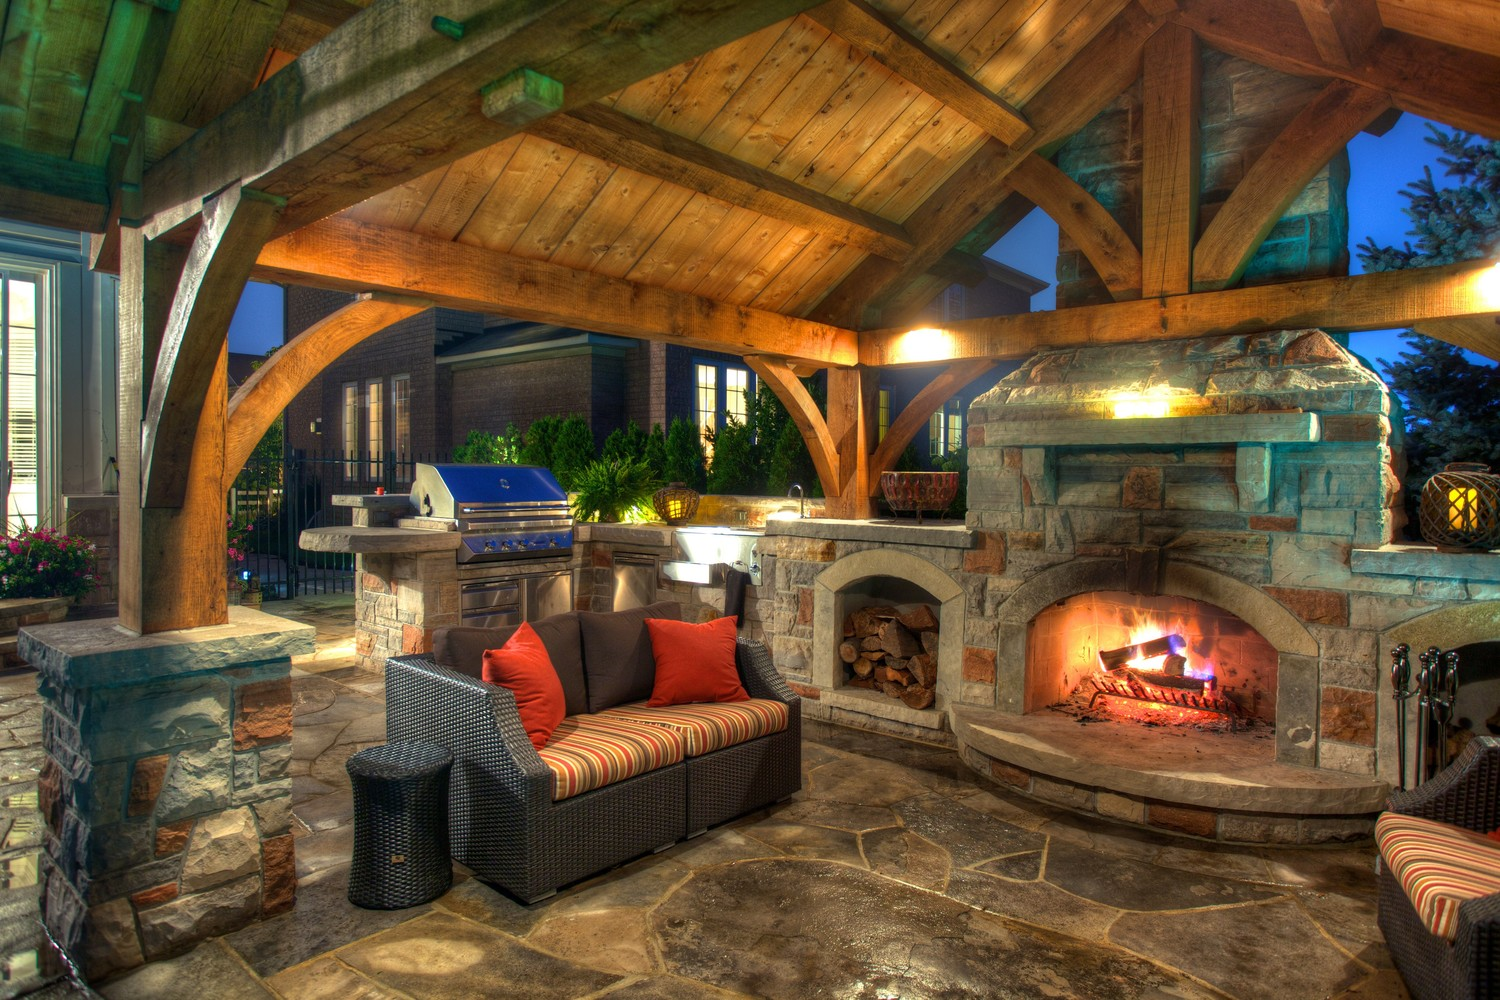 Cool Driftwood Mirror Look Denver Rustic Powder Room Inspiration With Bar Beige Wall Bowl Sink Built In Calendar Custom Driftwood Bathroom Mirror Driftwood Mirror Log together with A Coastal Farmhouse moreover Decking And Landscaping Your Hot Tub moreover Diy Pallet Upholstered Sectional Sofa Tutorial together with High Res Free Wood Textures. on rustic deck designs